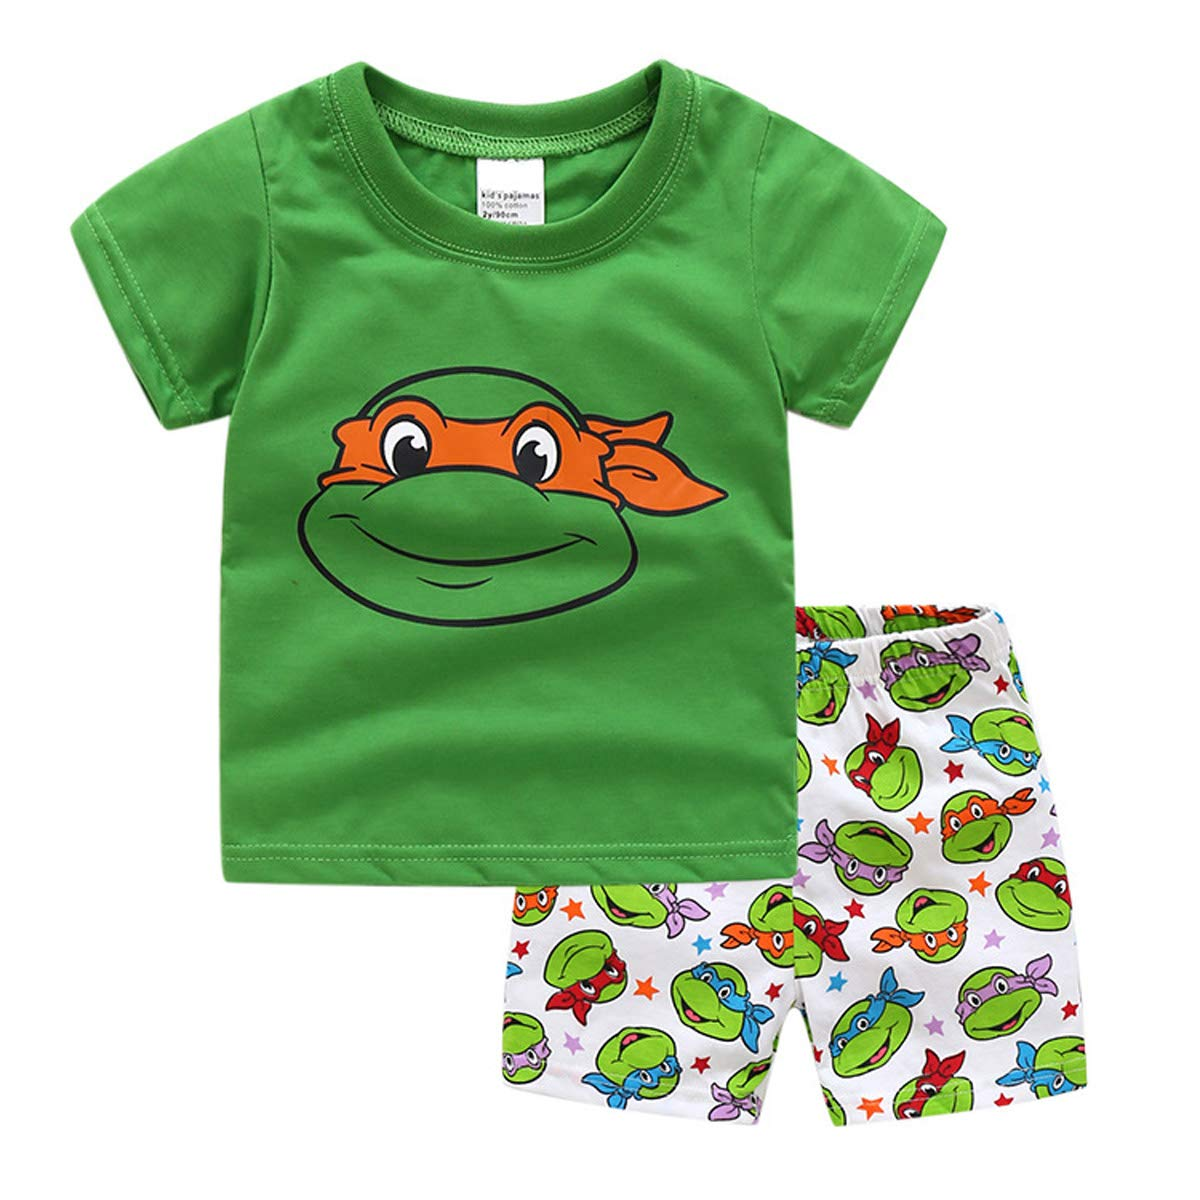 NING Little Boys Short Pajamas Sets Toddler PJS Set Cotton Kids Sleepwears (Ninja Turtles, 6T)